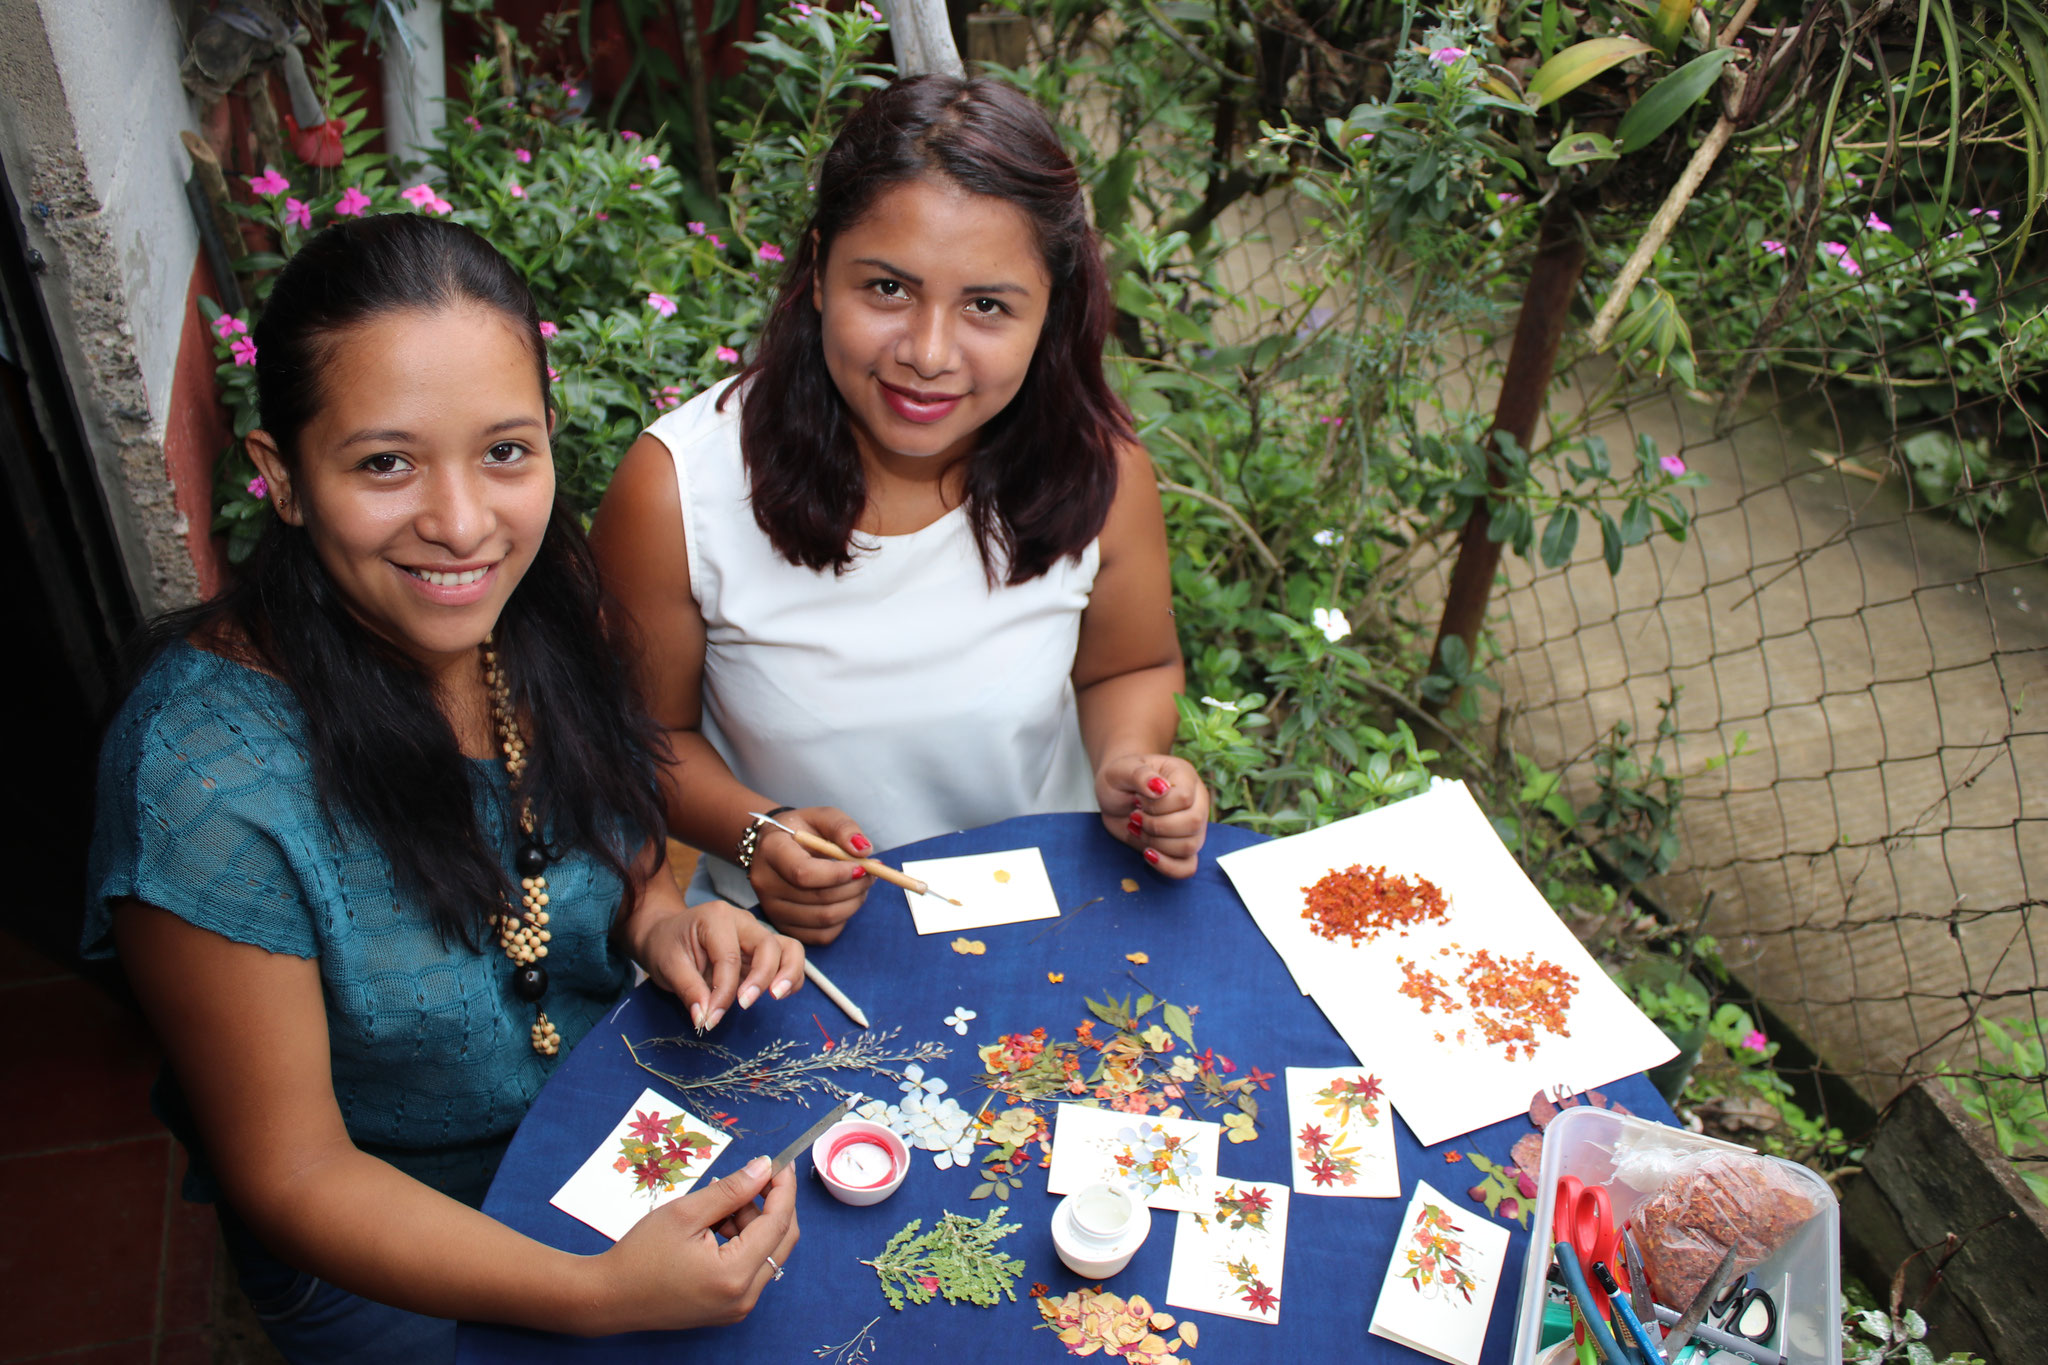 Noelia and Daniela create beautiful cards and pictures with flowers for their company Guanaquitas